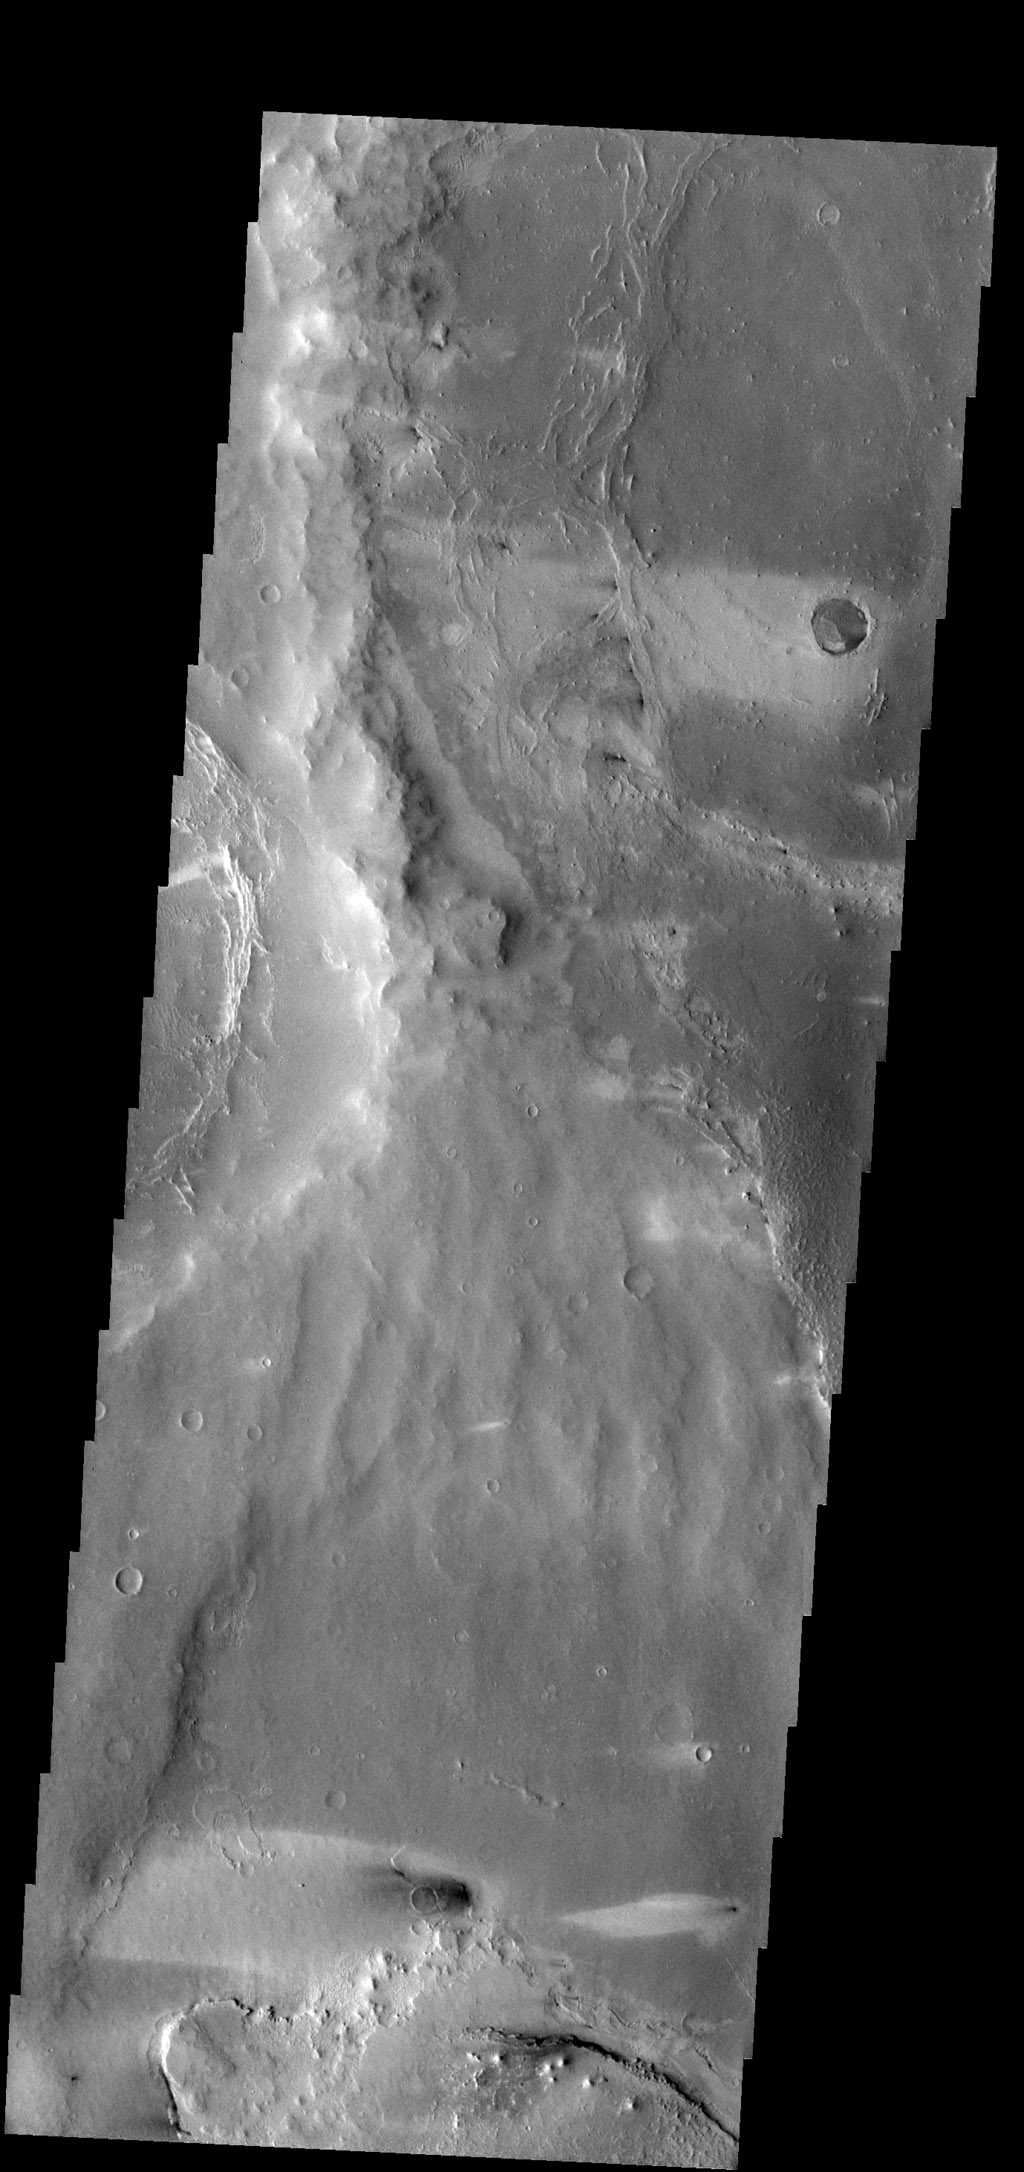 Windstreaks in this image indicate winds from the east to west in this region of Meridiani Planum captured by NASA's 2001 Mars Odyssey spacecraft.